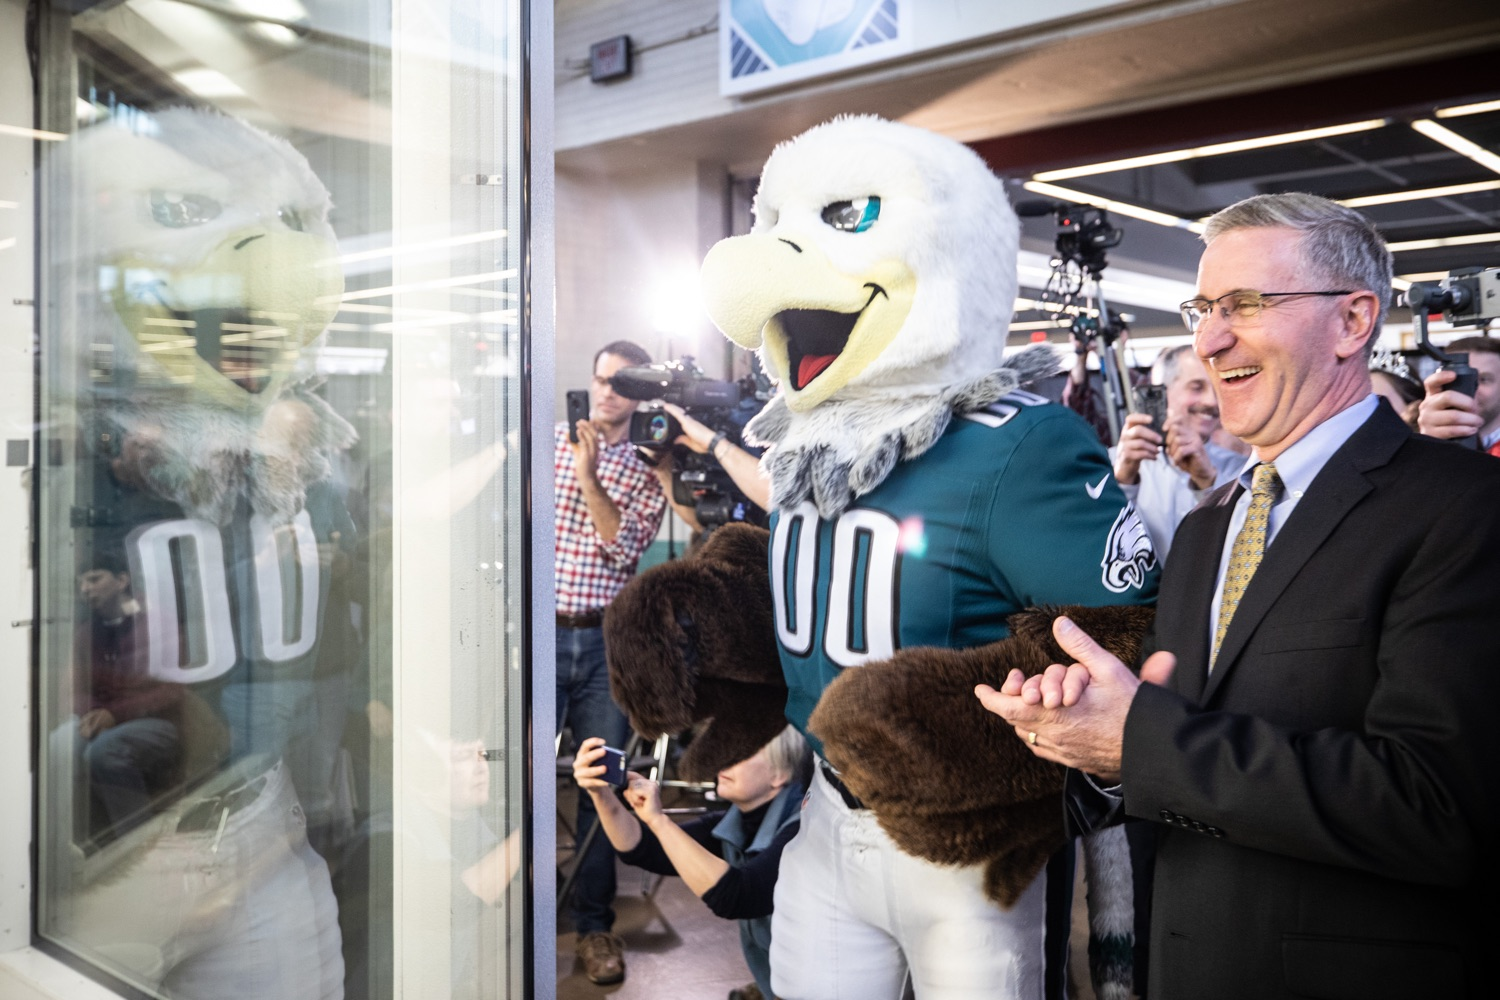 "<a href=""http://filesource.abacast.com/commonwealthofpa/photo/17646_agric_butter_sculpture_dz_019.jpg"" target=""_blank"">⇣ Download Photo<br></a>Philadelphia Eagles Swoop, and Secretary of Agriculture Russell Redding check out the Pennsylvania Farm Show butter sculpture.  Lt. Governor John Fetterman and Secretary of Agriculture Russell Redding today unveiled the 2020 Pennsylvania Farm Show butter sculpture, carved from a half-ton of butter depicting three of Pennsylvanias beloved professional sports mascots: Philadelphia Flyers Gritty, Philadelphia Eagles Swoop, and Pittsburgh Steelers Steely McBeam celebrating with a spread of Pennsylvania dairy products. The sculpture, a long-time Farm Show staple, encourages Pennsylvanians to be a fan of Pennsylvania dairy and give a cheer to the more than 6,200 dairy farmers in the commonwealth.  Harrisburg, PA  January 2, 2020"